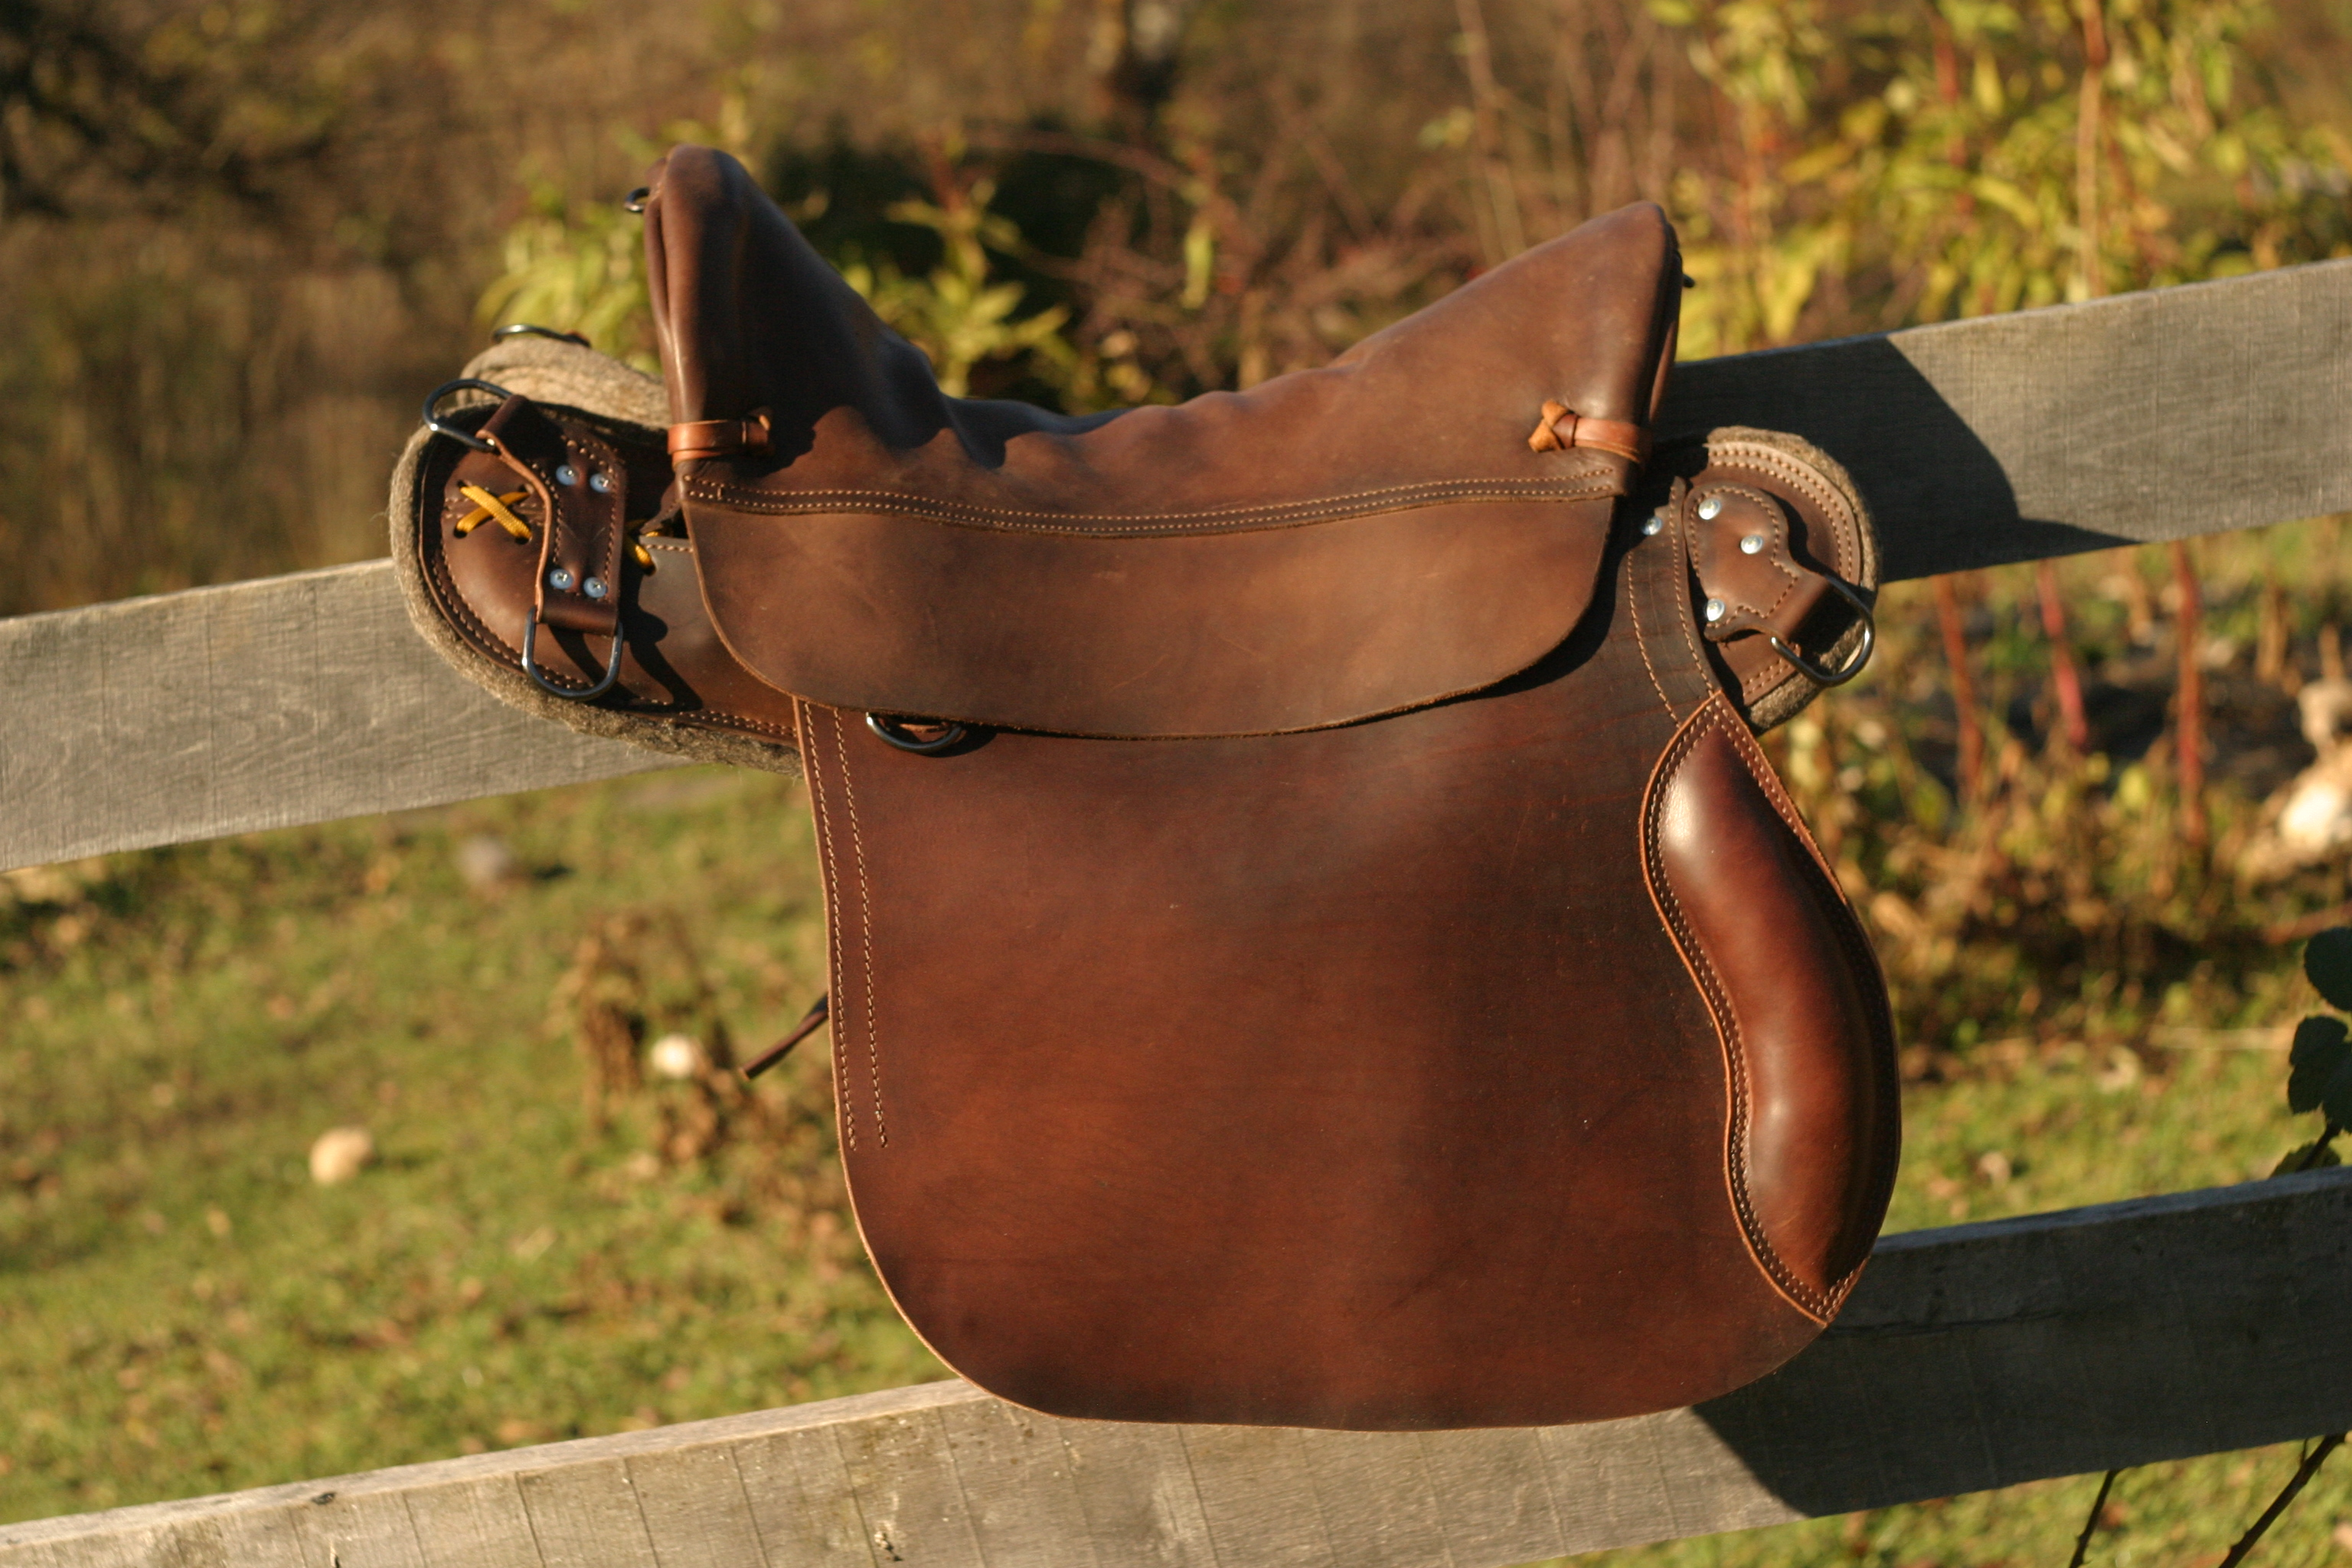 dating saddles Saddles all saddles listed here are compensated exactly like the factory saddle place your cursor over the image to get more information: bone: vintage bone.